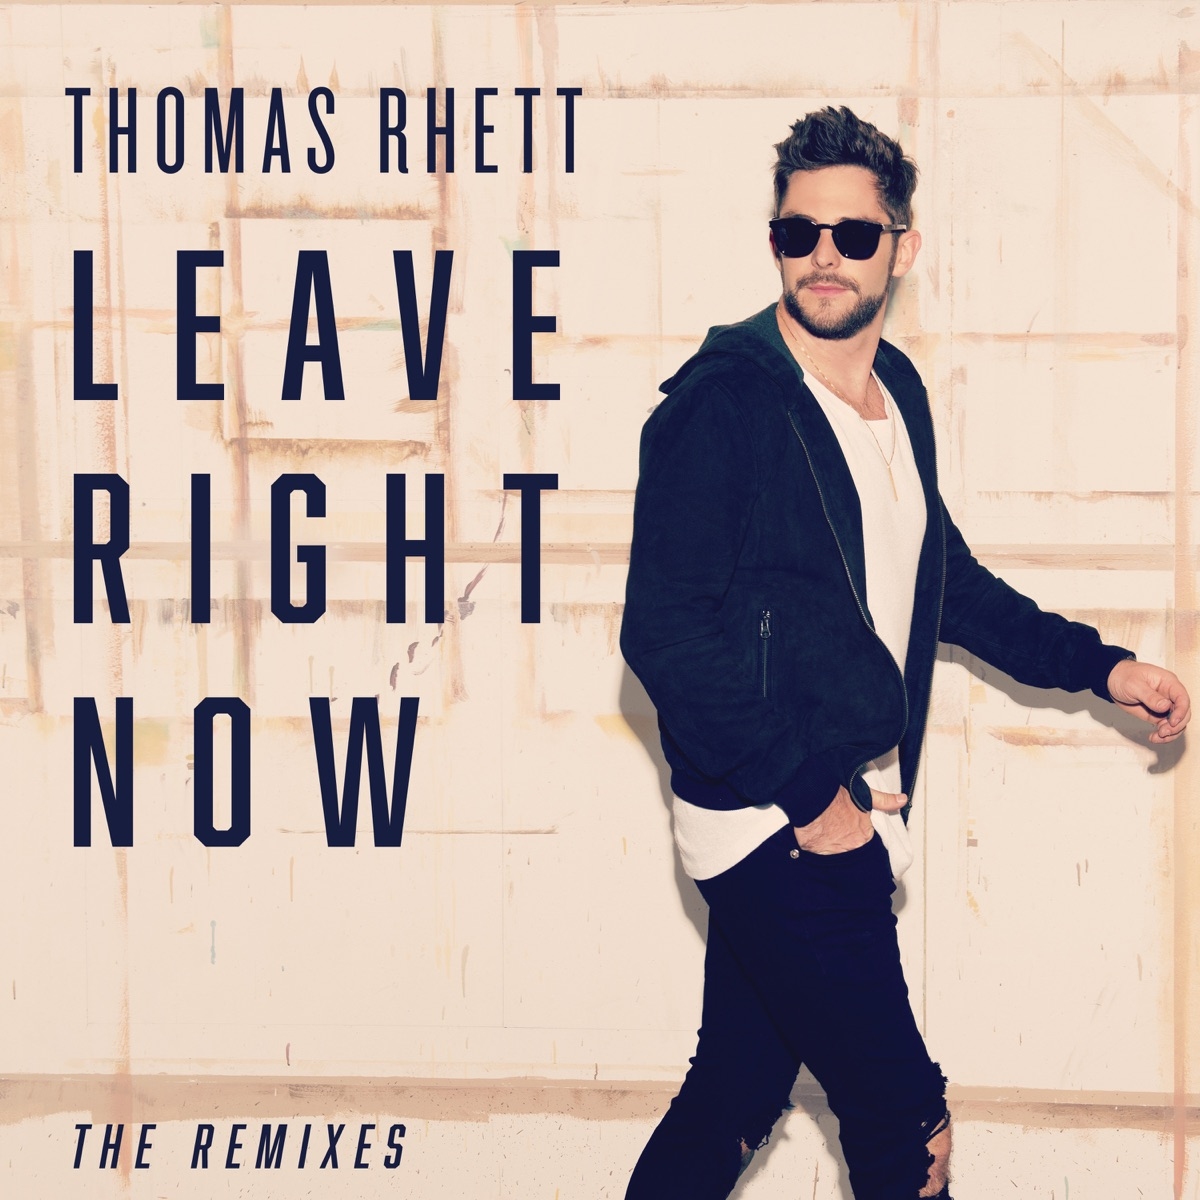 Leave Right Now The Remixes - EP Thomas Rhett CD cover